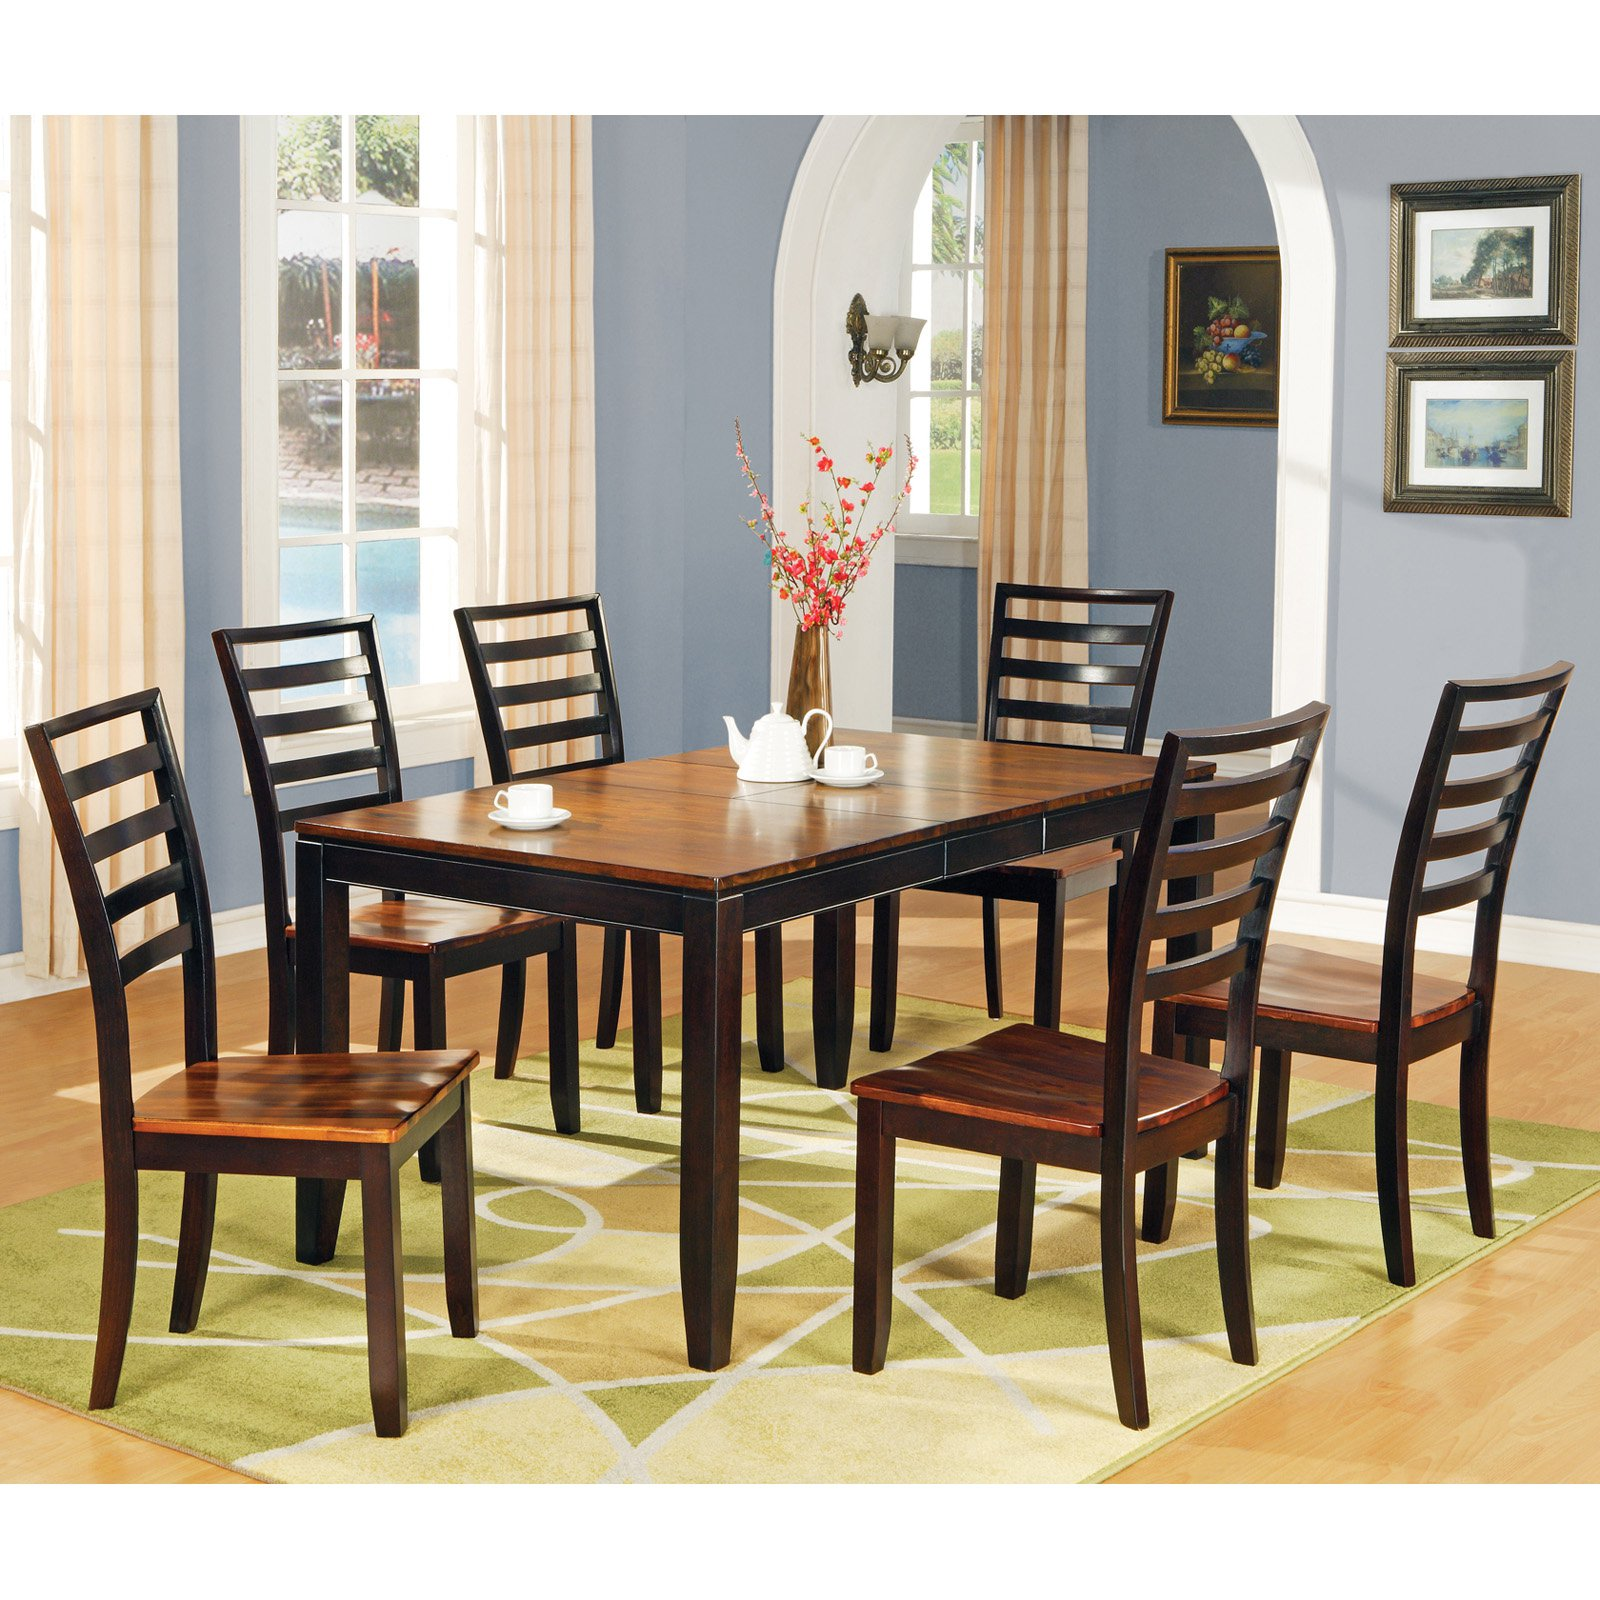 Steve Silver Abaco 7-Piece Dining Table Set